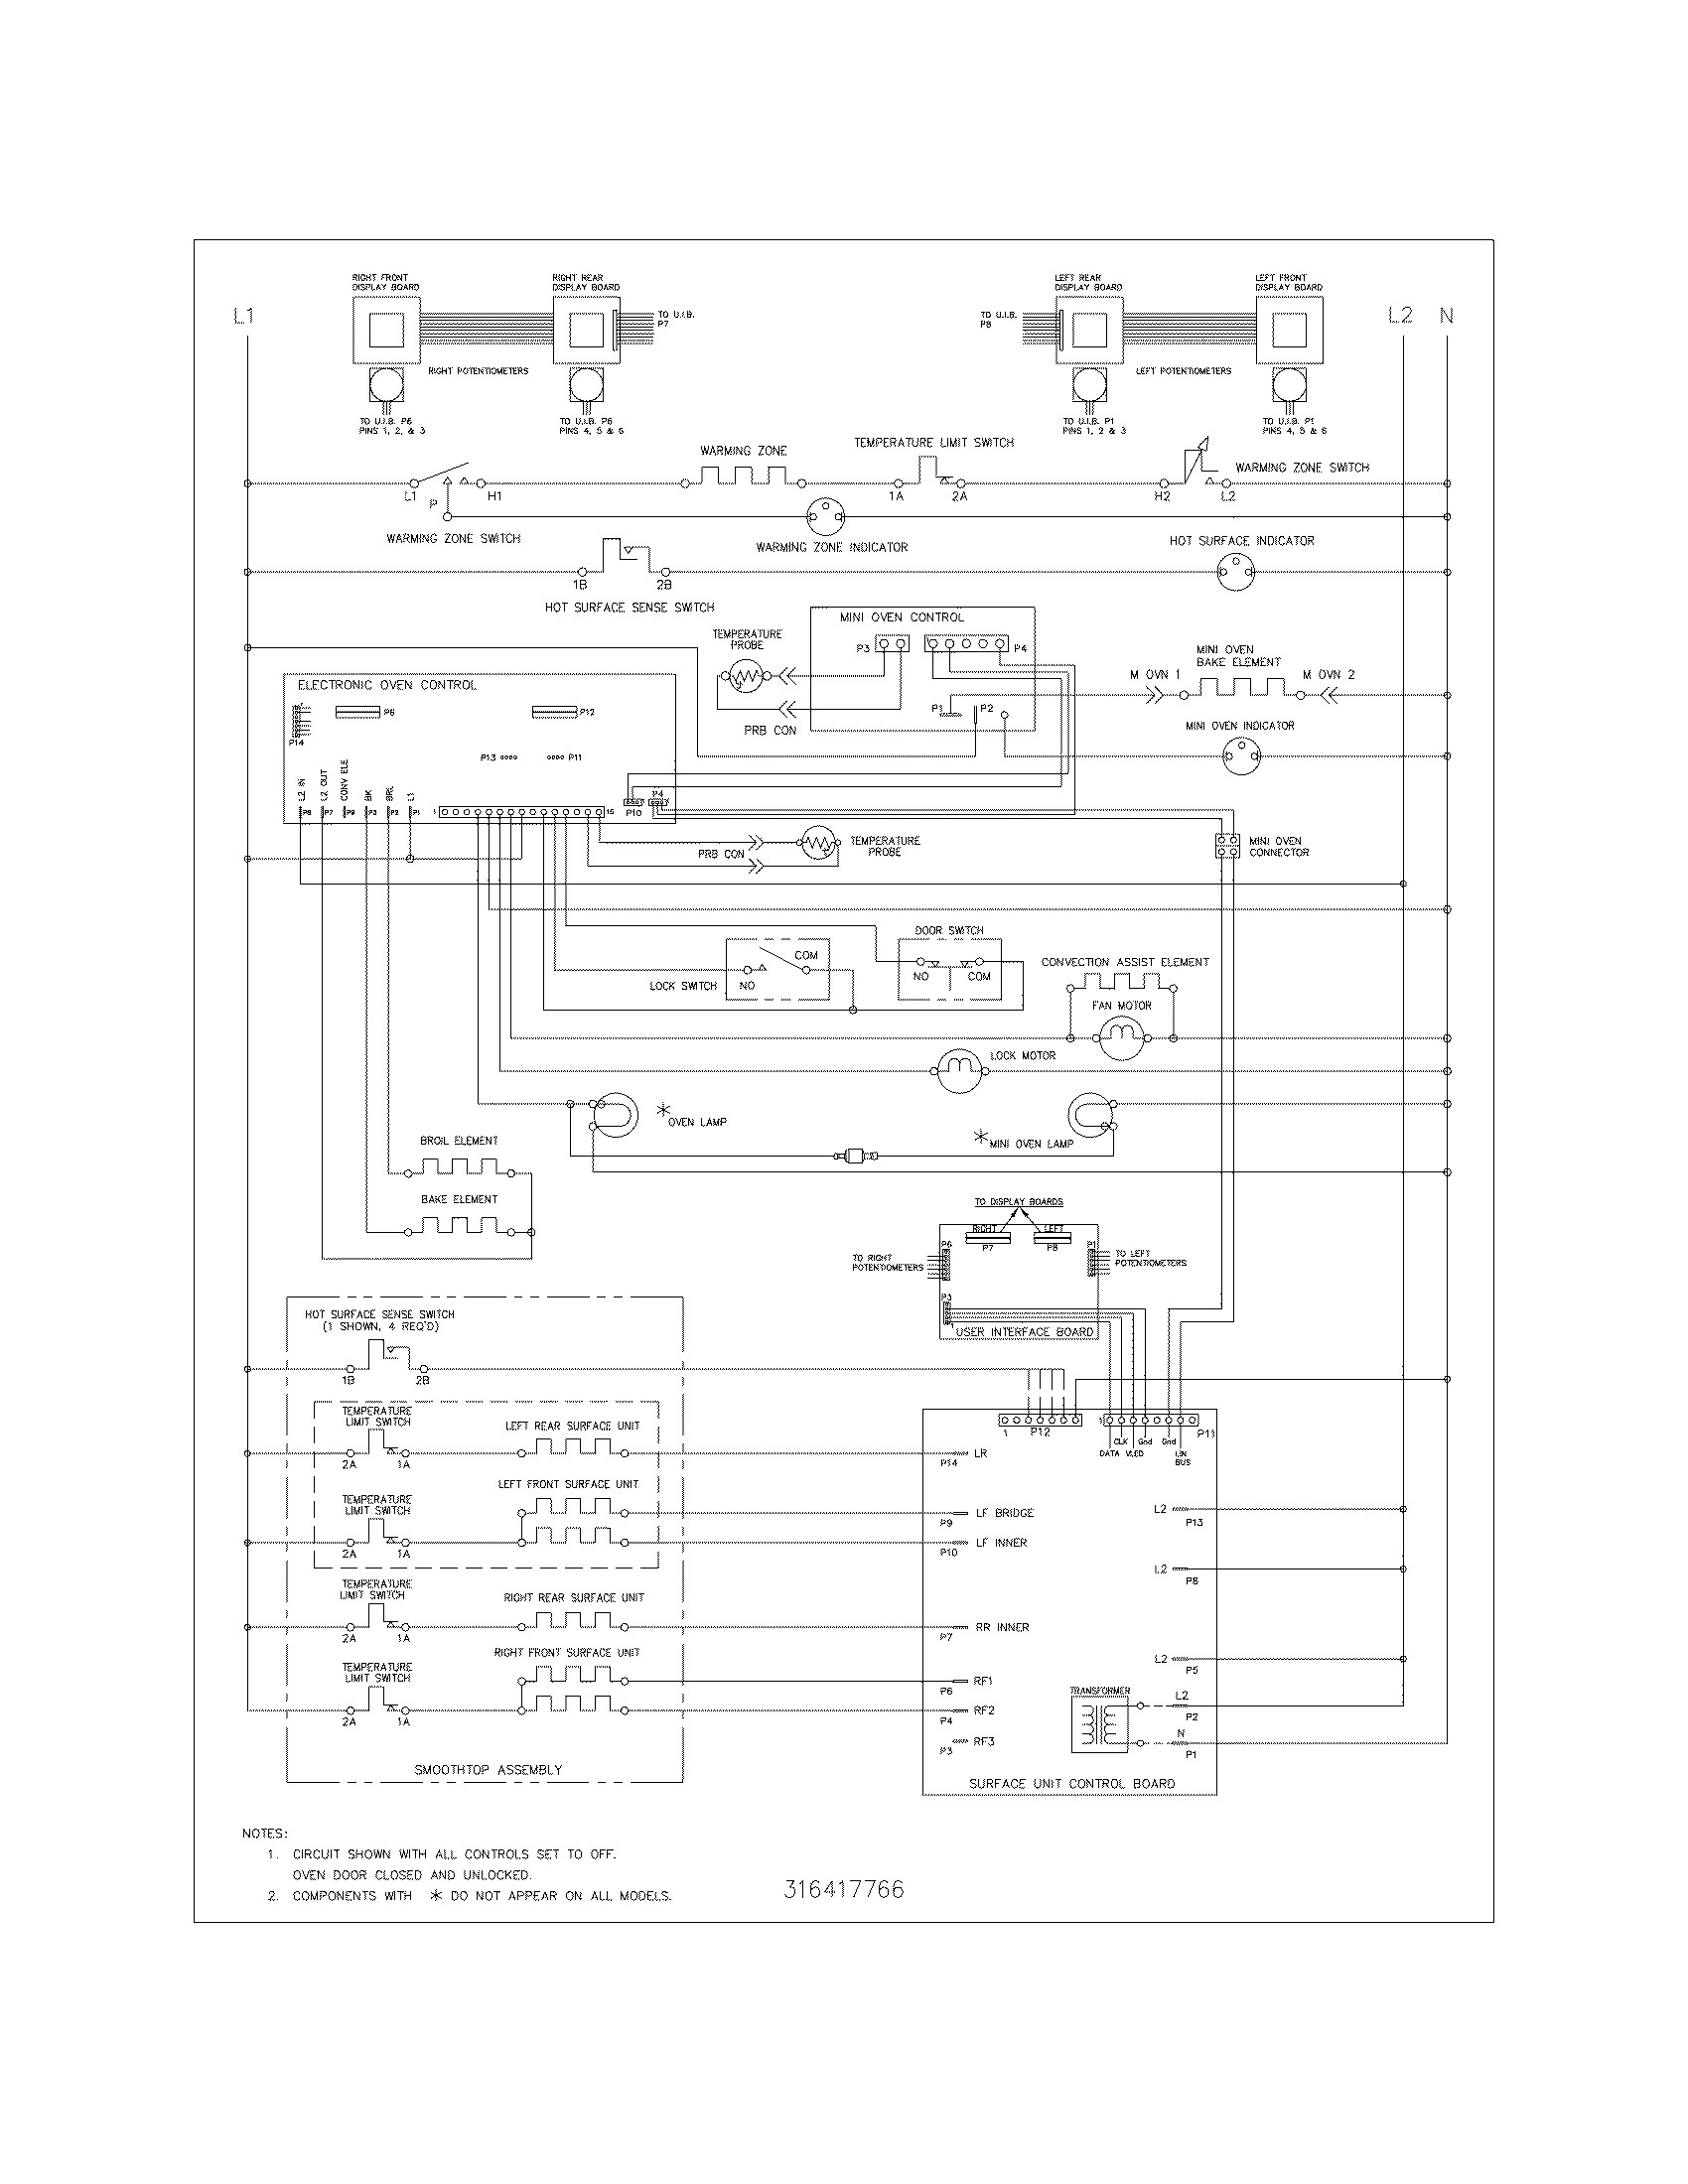 Frigidaire Stove Parts Diagram Looking for Frigidaire Model Plefmz99eca Electric Range Repair Of Frigidaire Stove Parts Diagram Looking for Frigidaire Model Plefmz99eca Electric Range Repair